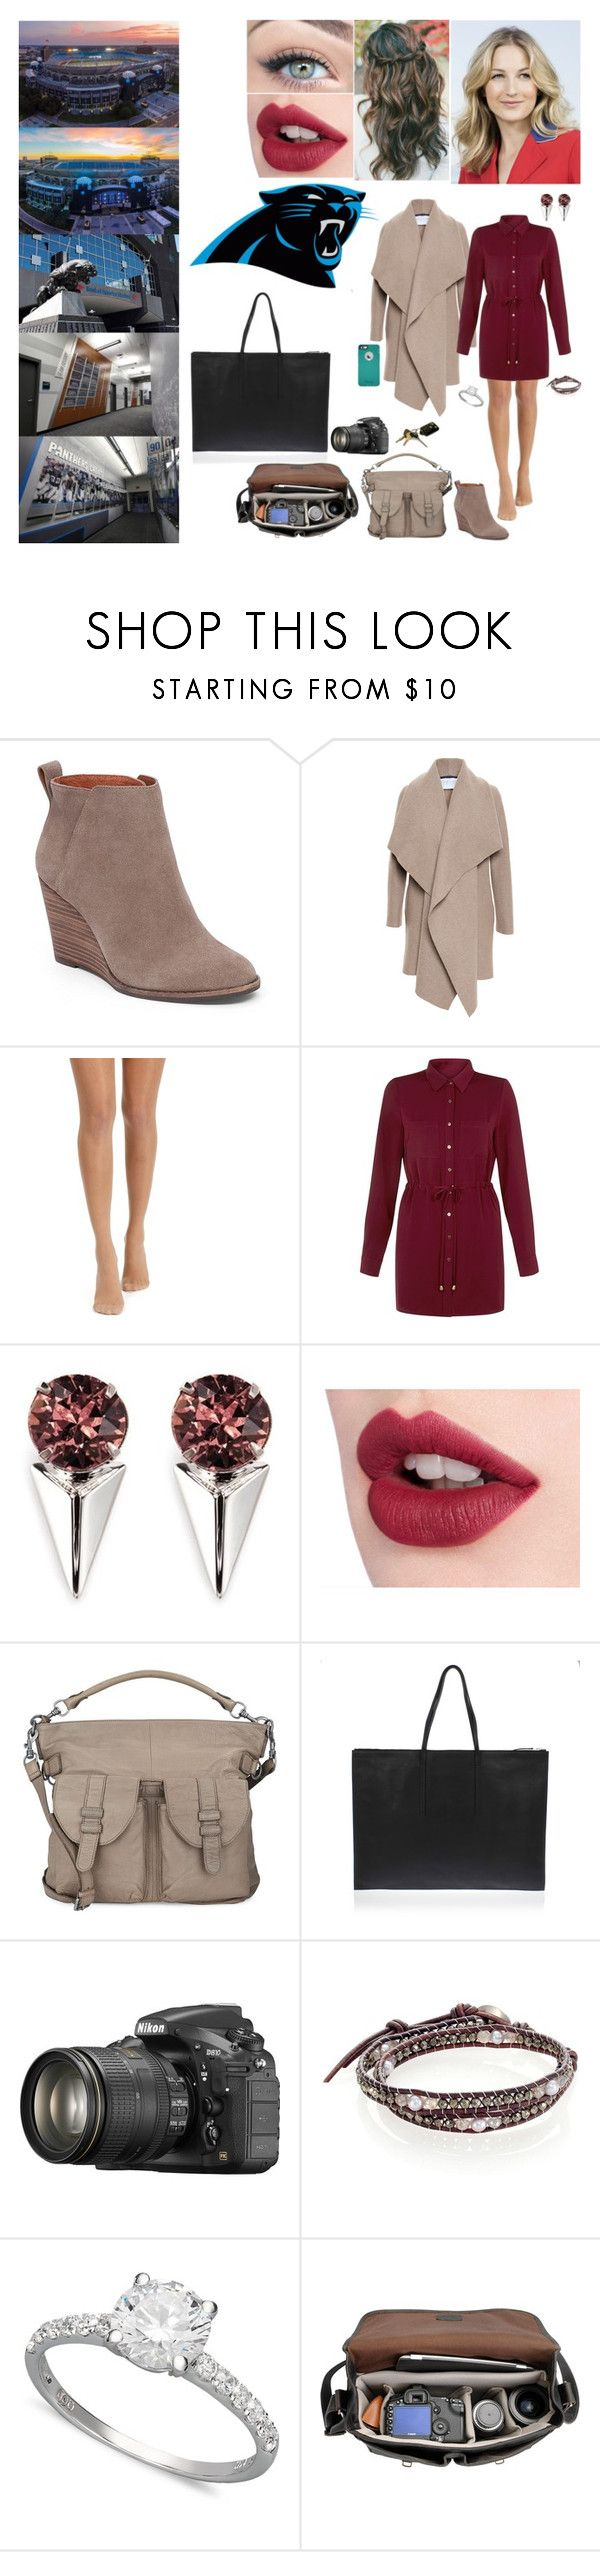 """Panthers Interview"" by mkat99 ❤ liked on Polyvore featuring Harris Wharf London, OtterBox, Cameo Rose, Joomi Lim, Charlotte Tilbury, Liebeskind, Rick Owens, Nikon, Chan Luu and Arabella"